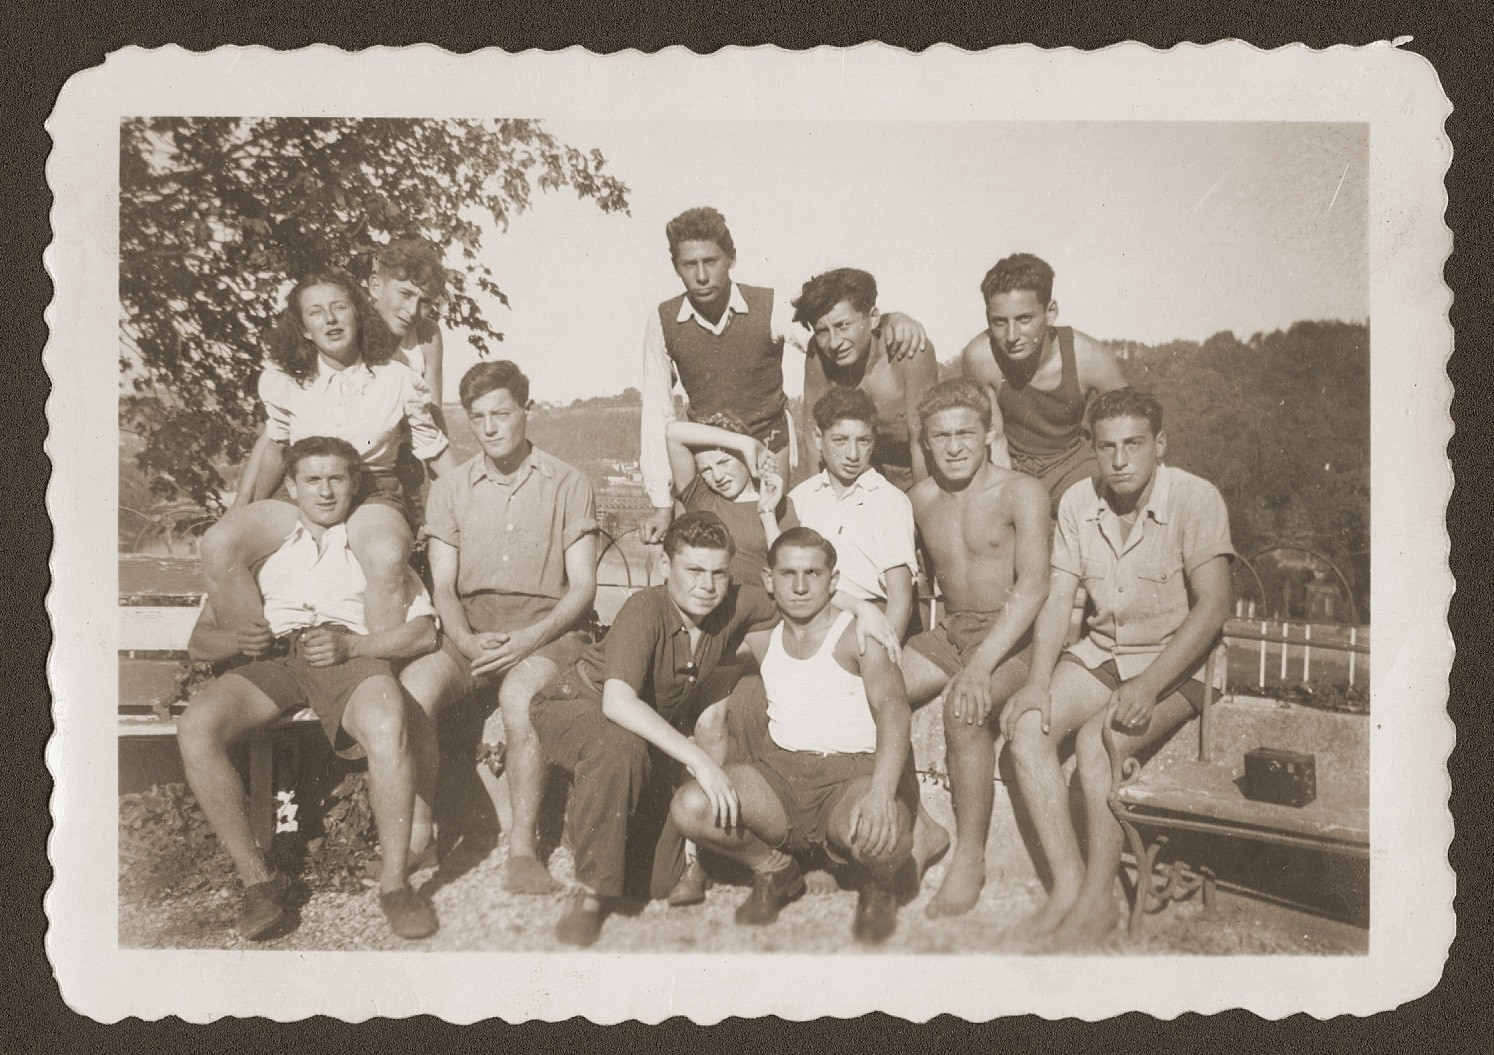 Group portrait of Jewish youth living at the OSE (Oeuvre de Secours aux Enfants) children's home at Collognes au Mont d'or.    Among those pictured are Siegfried Weissmann (first row in the white tank top) and Kurt Leuchter (standing on the far right).